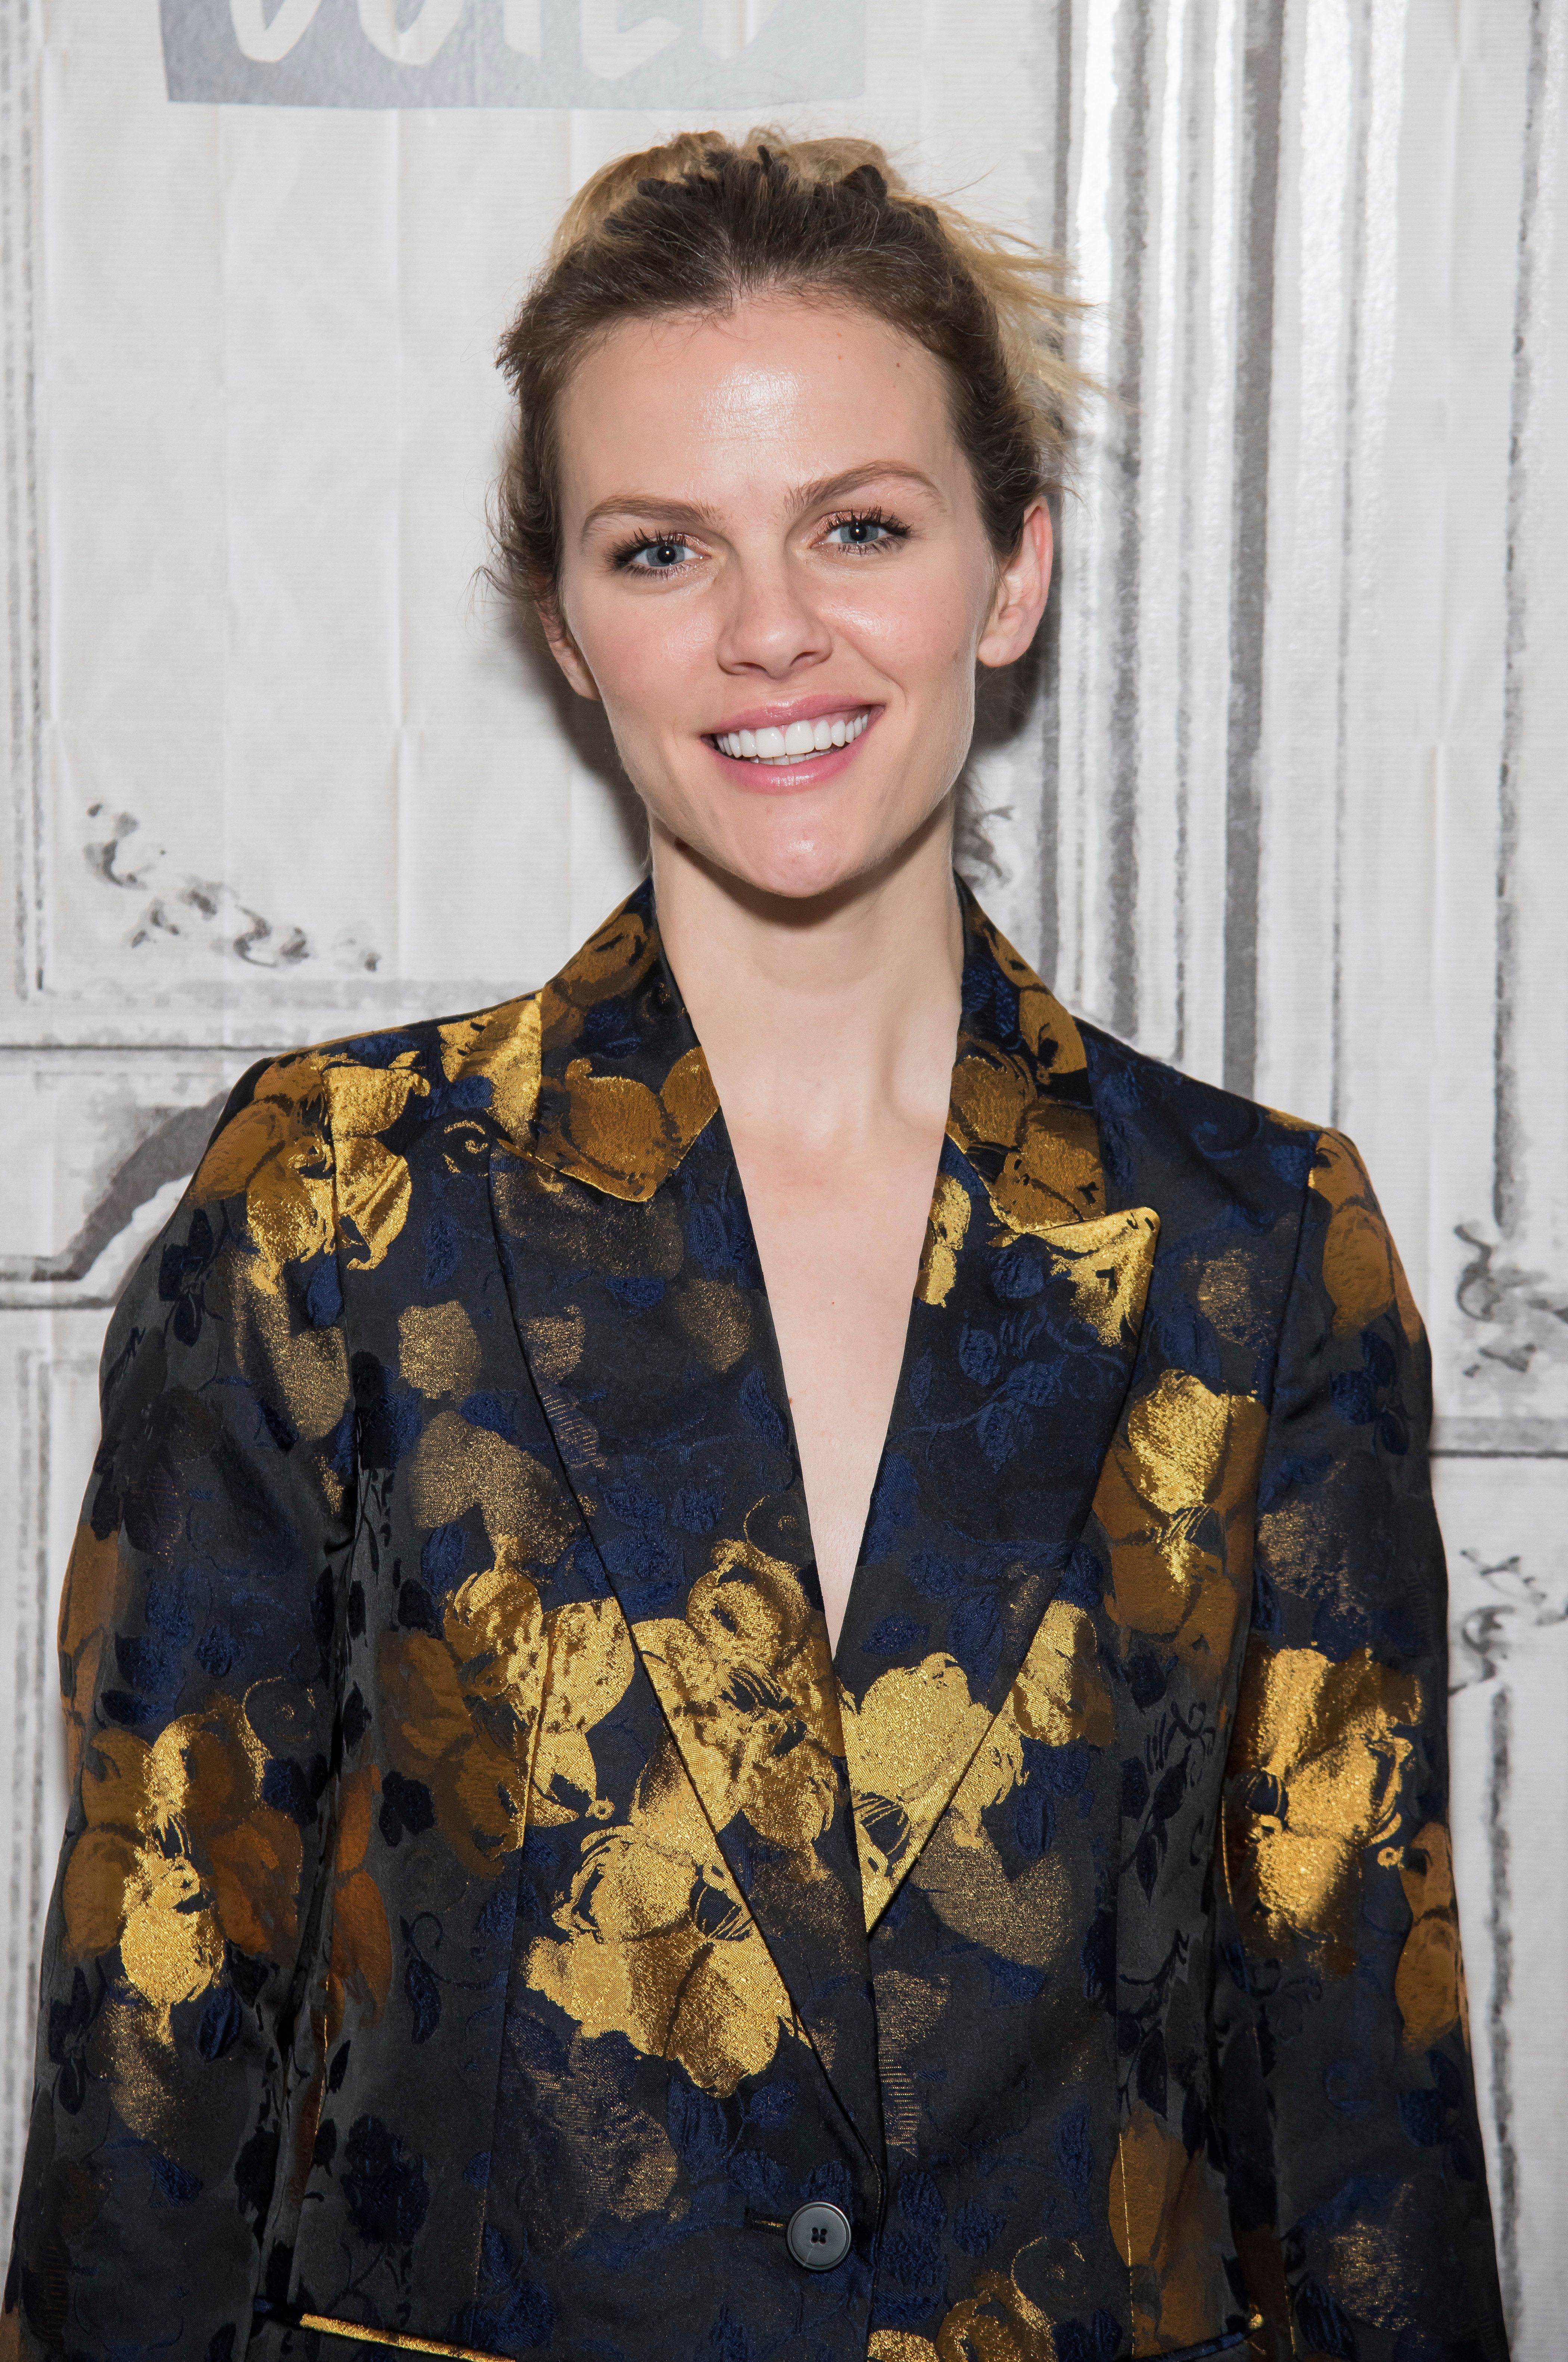 Brooklyn Decker participates in the BUILD Speaker Series to discuss the #BlogHer18 Creators Summit at AOL Studios on Monday, Aug. 6, 2018, in New York. (Photo by Charles Sykes/Invision/AP)